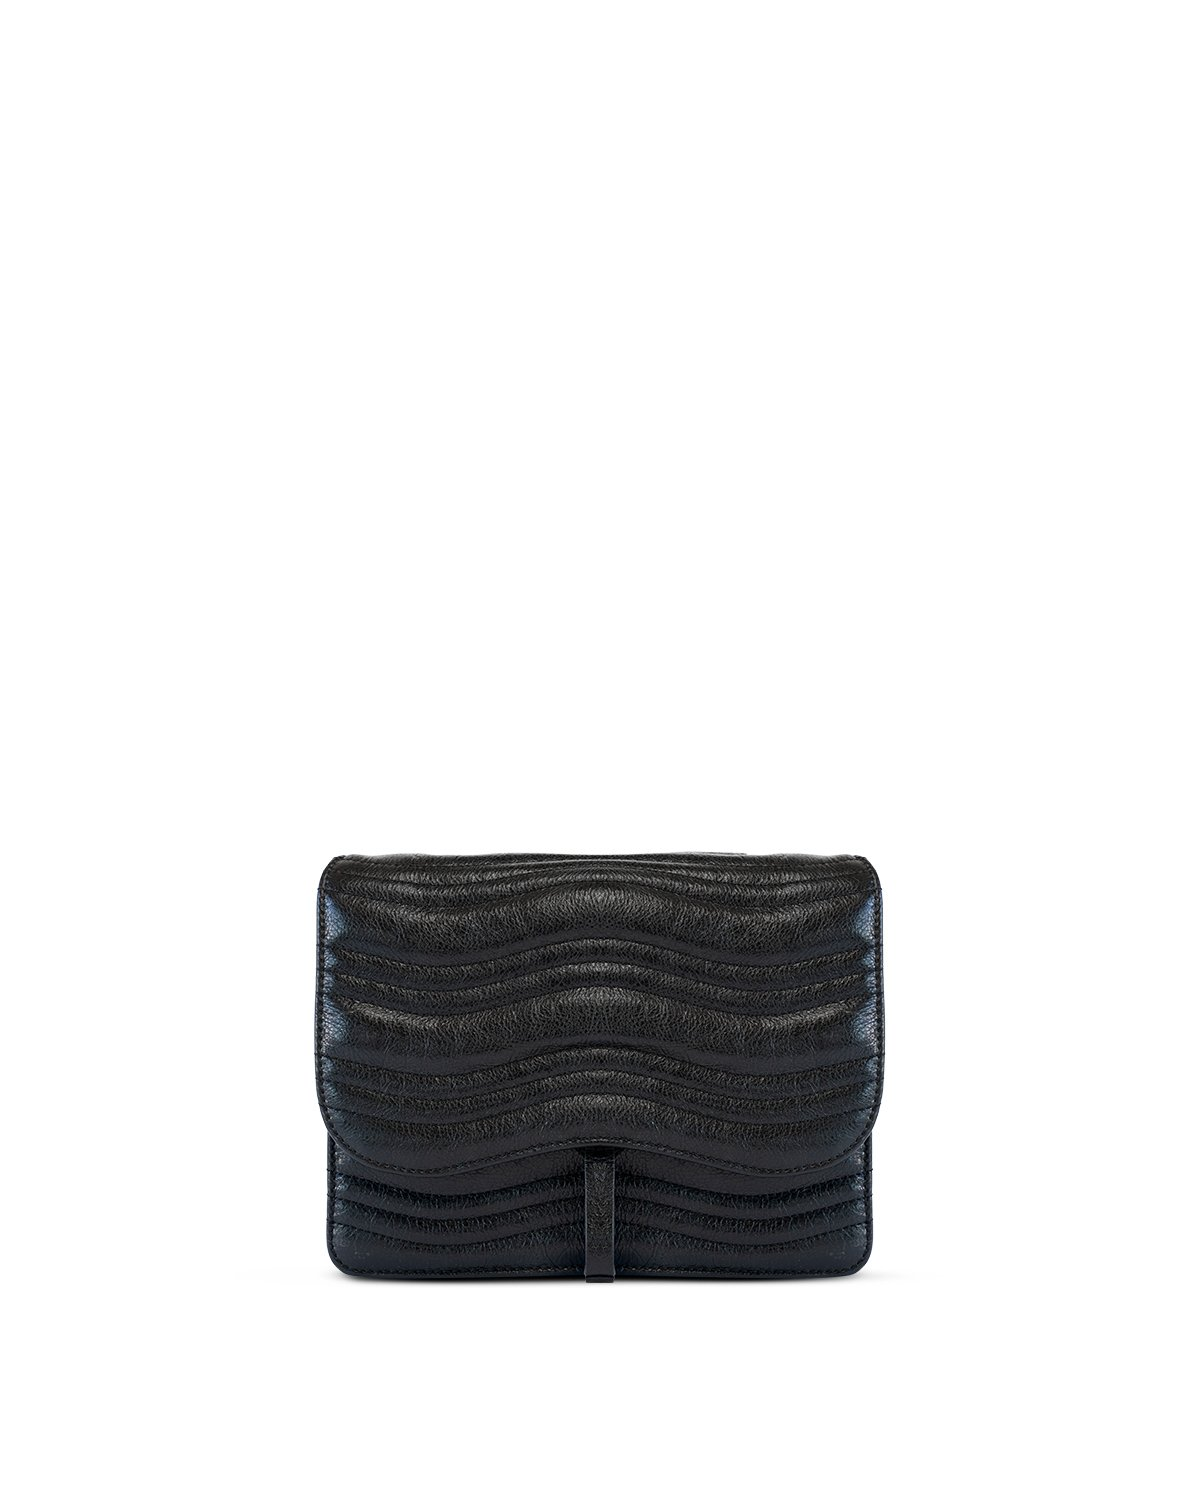 Kilesa luxury bag in pelle nera laminata